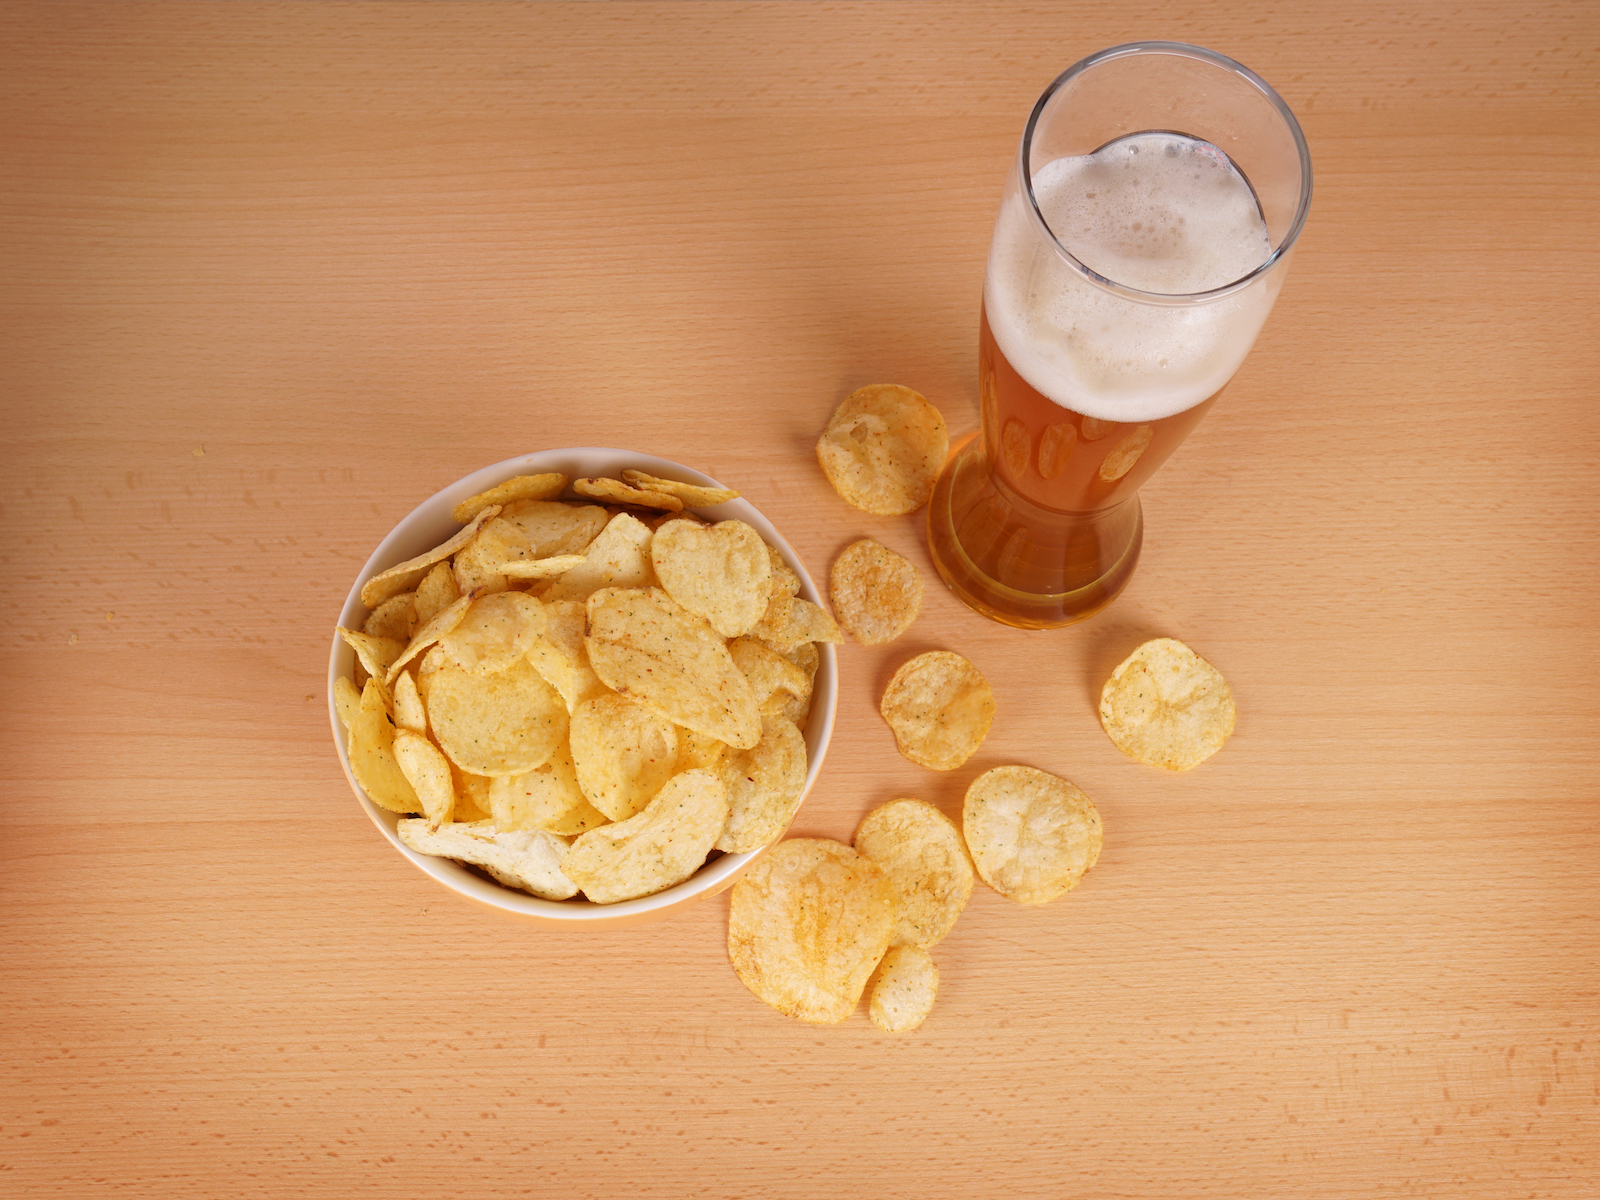 100-Year-Old Woman Says Beer and Chips are Her Secret to Longevity